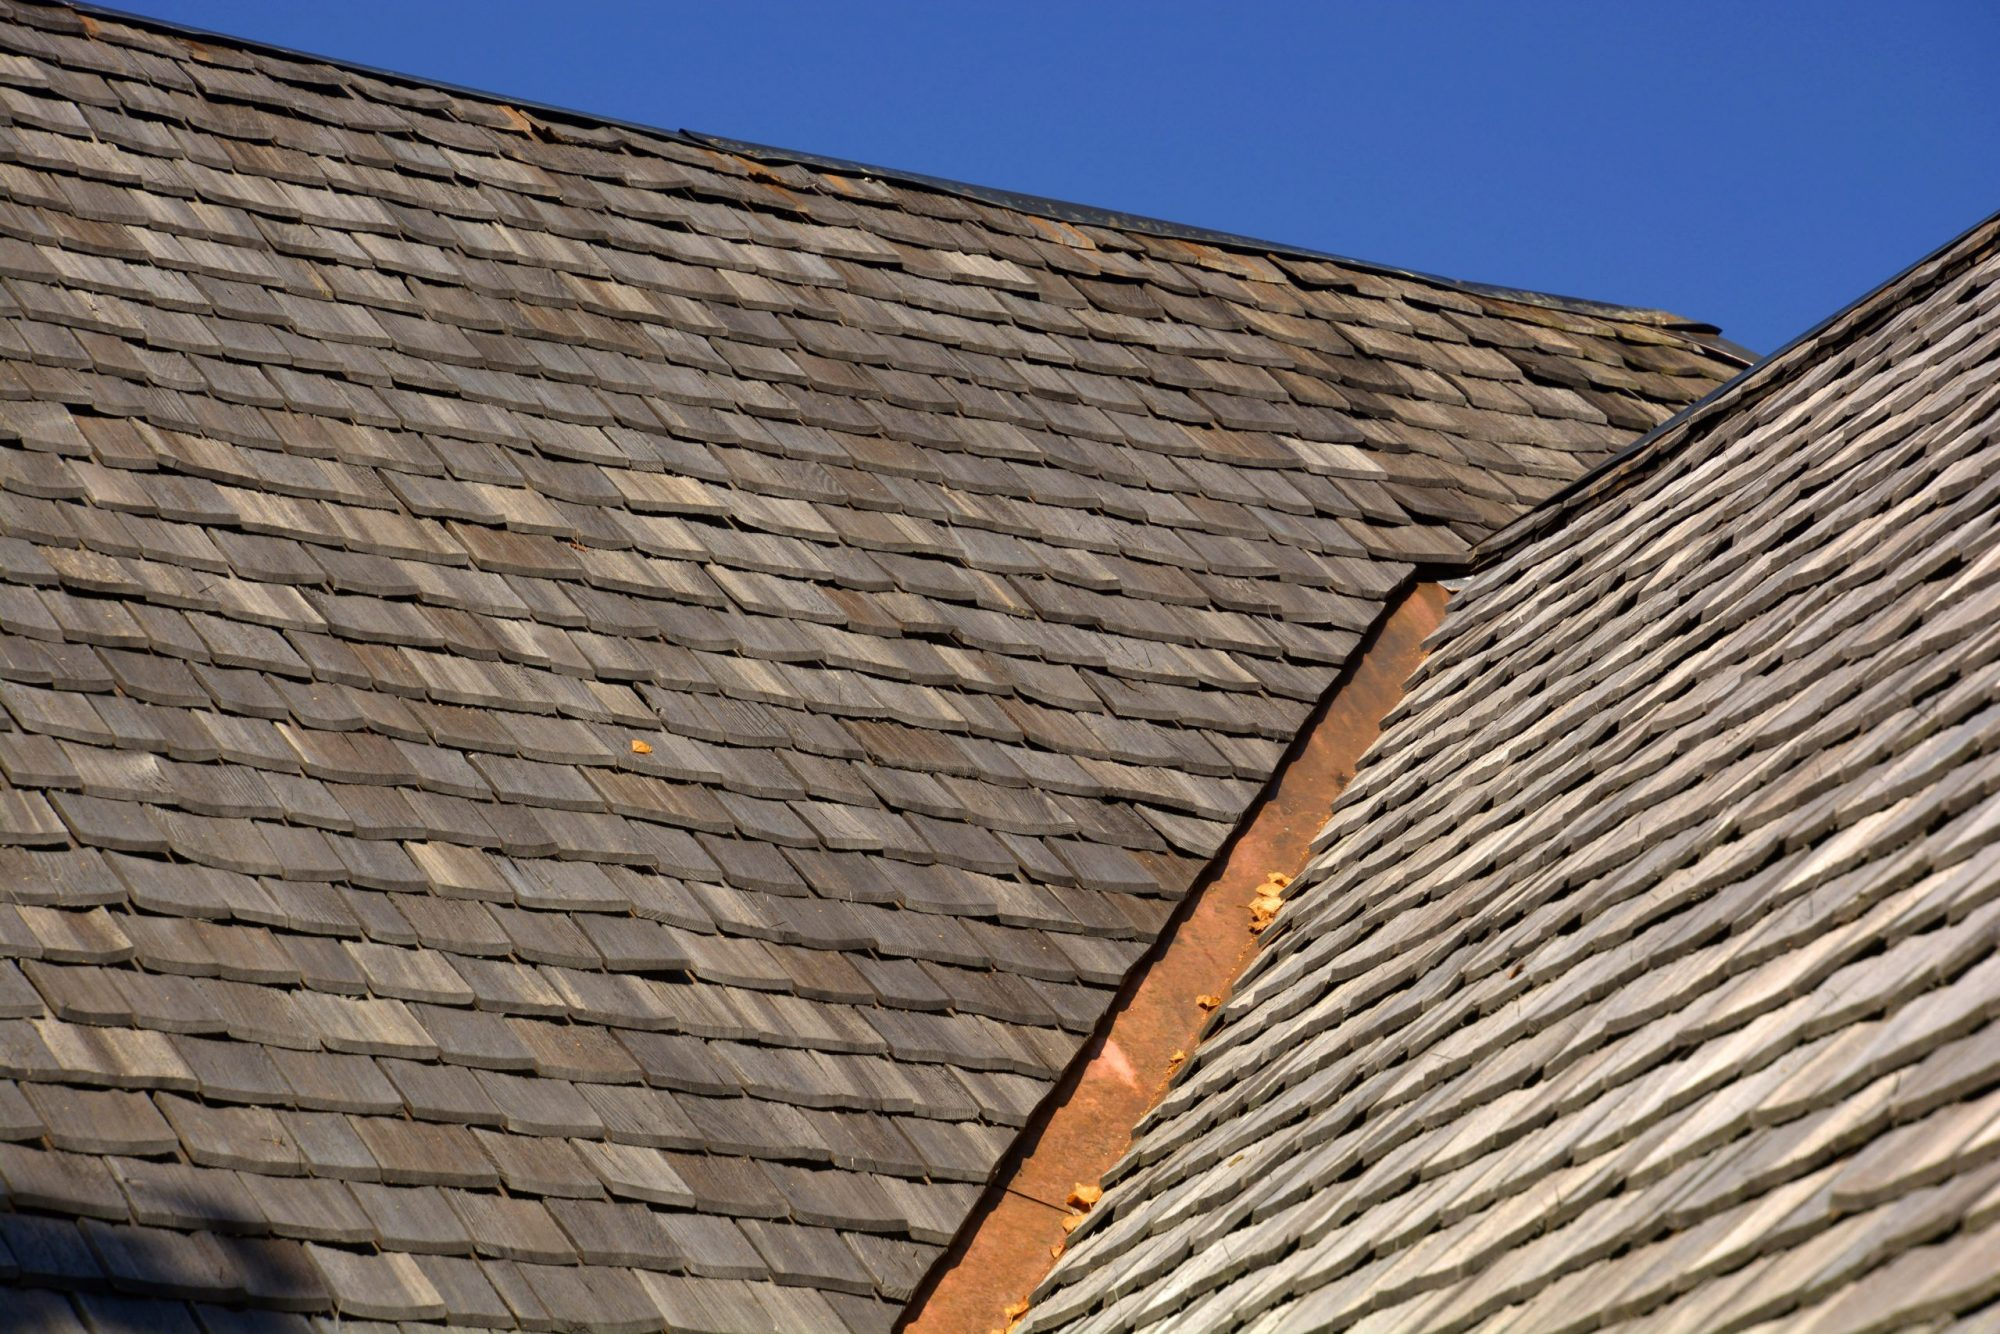 excellent shake roof contractor st louis missouri cedar roof shakes roofing roofer shake roof cedar shake roofing new shake roof shake shingle shingles